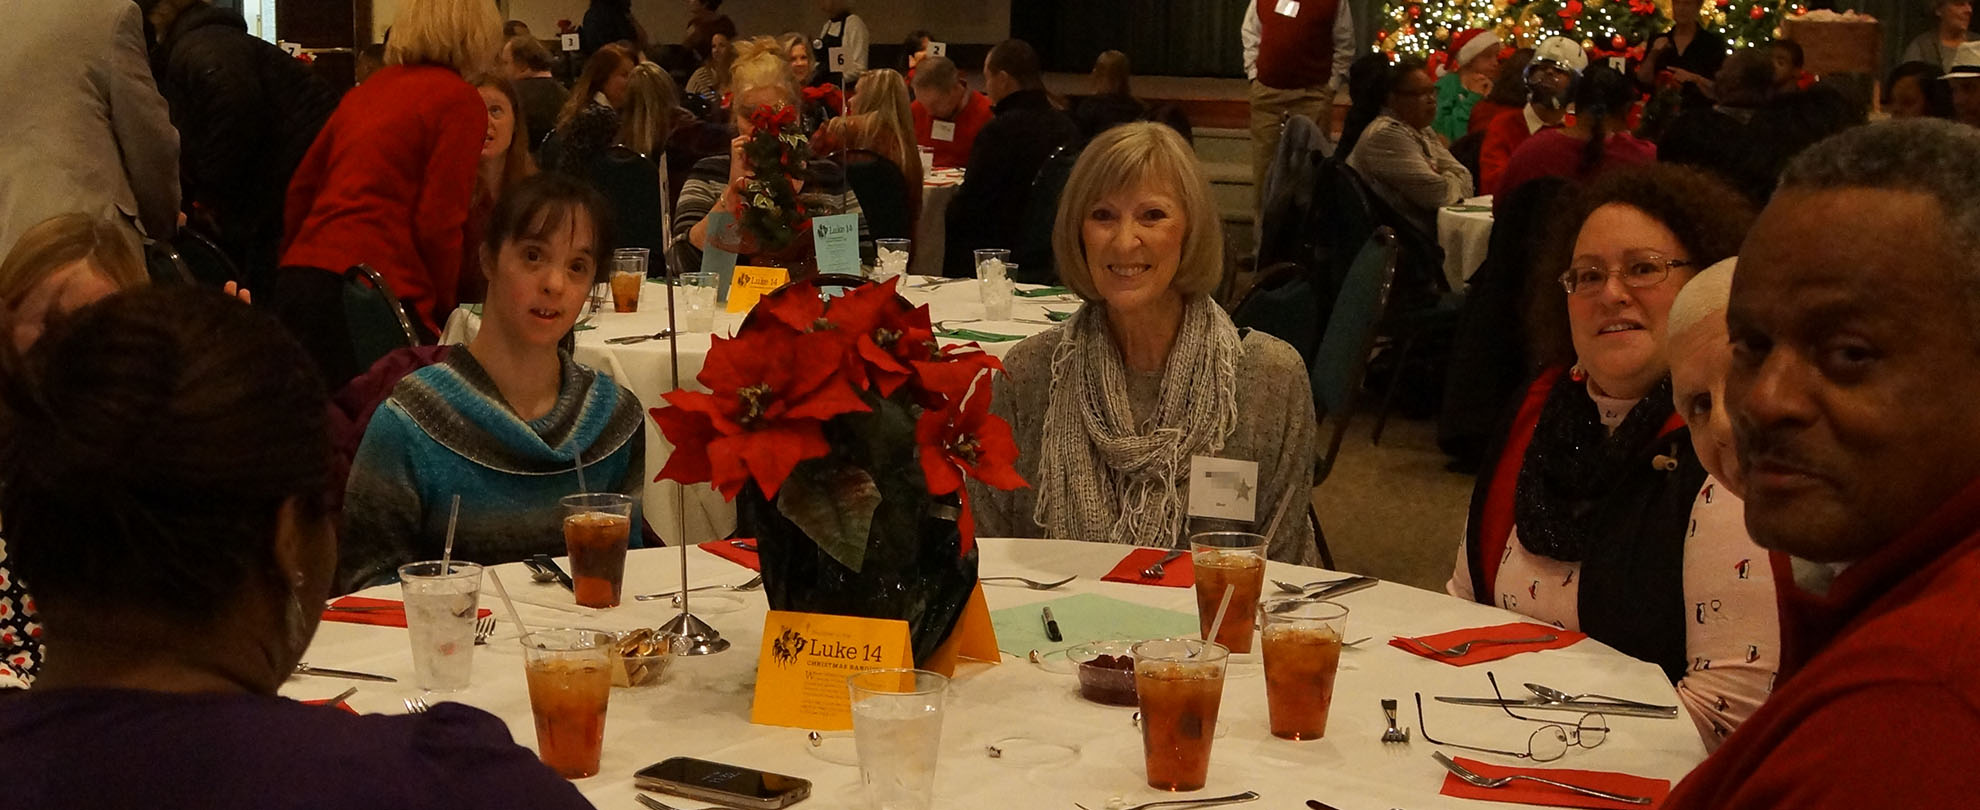 Luke 14 Banquets: